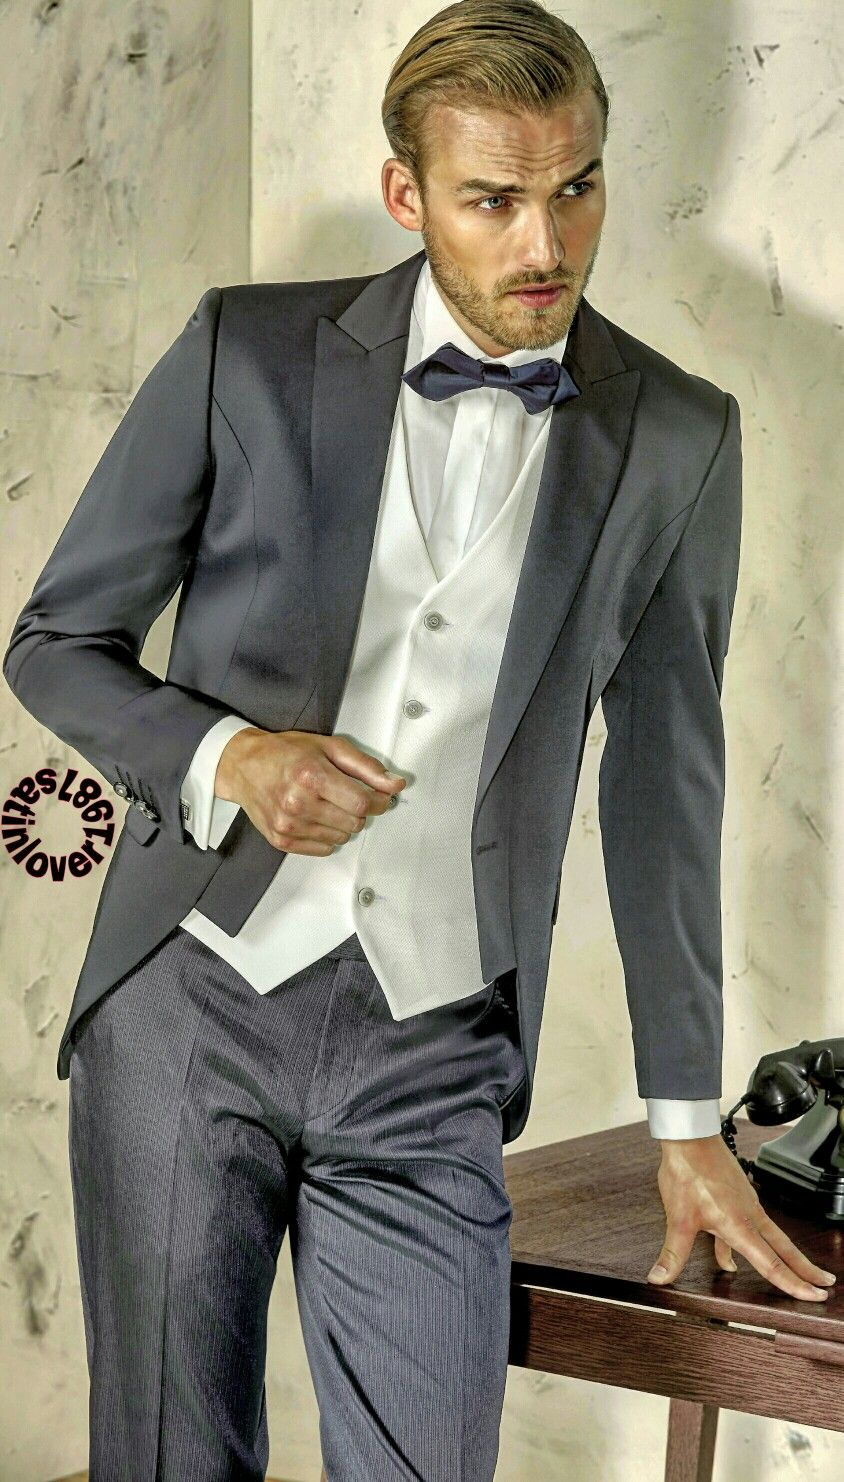 Pin by tommaguire on dapper dandys pinterest bowties and dapper